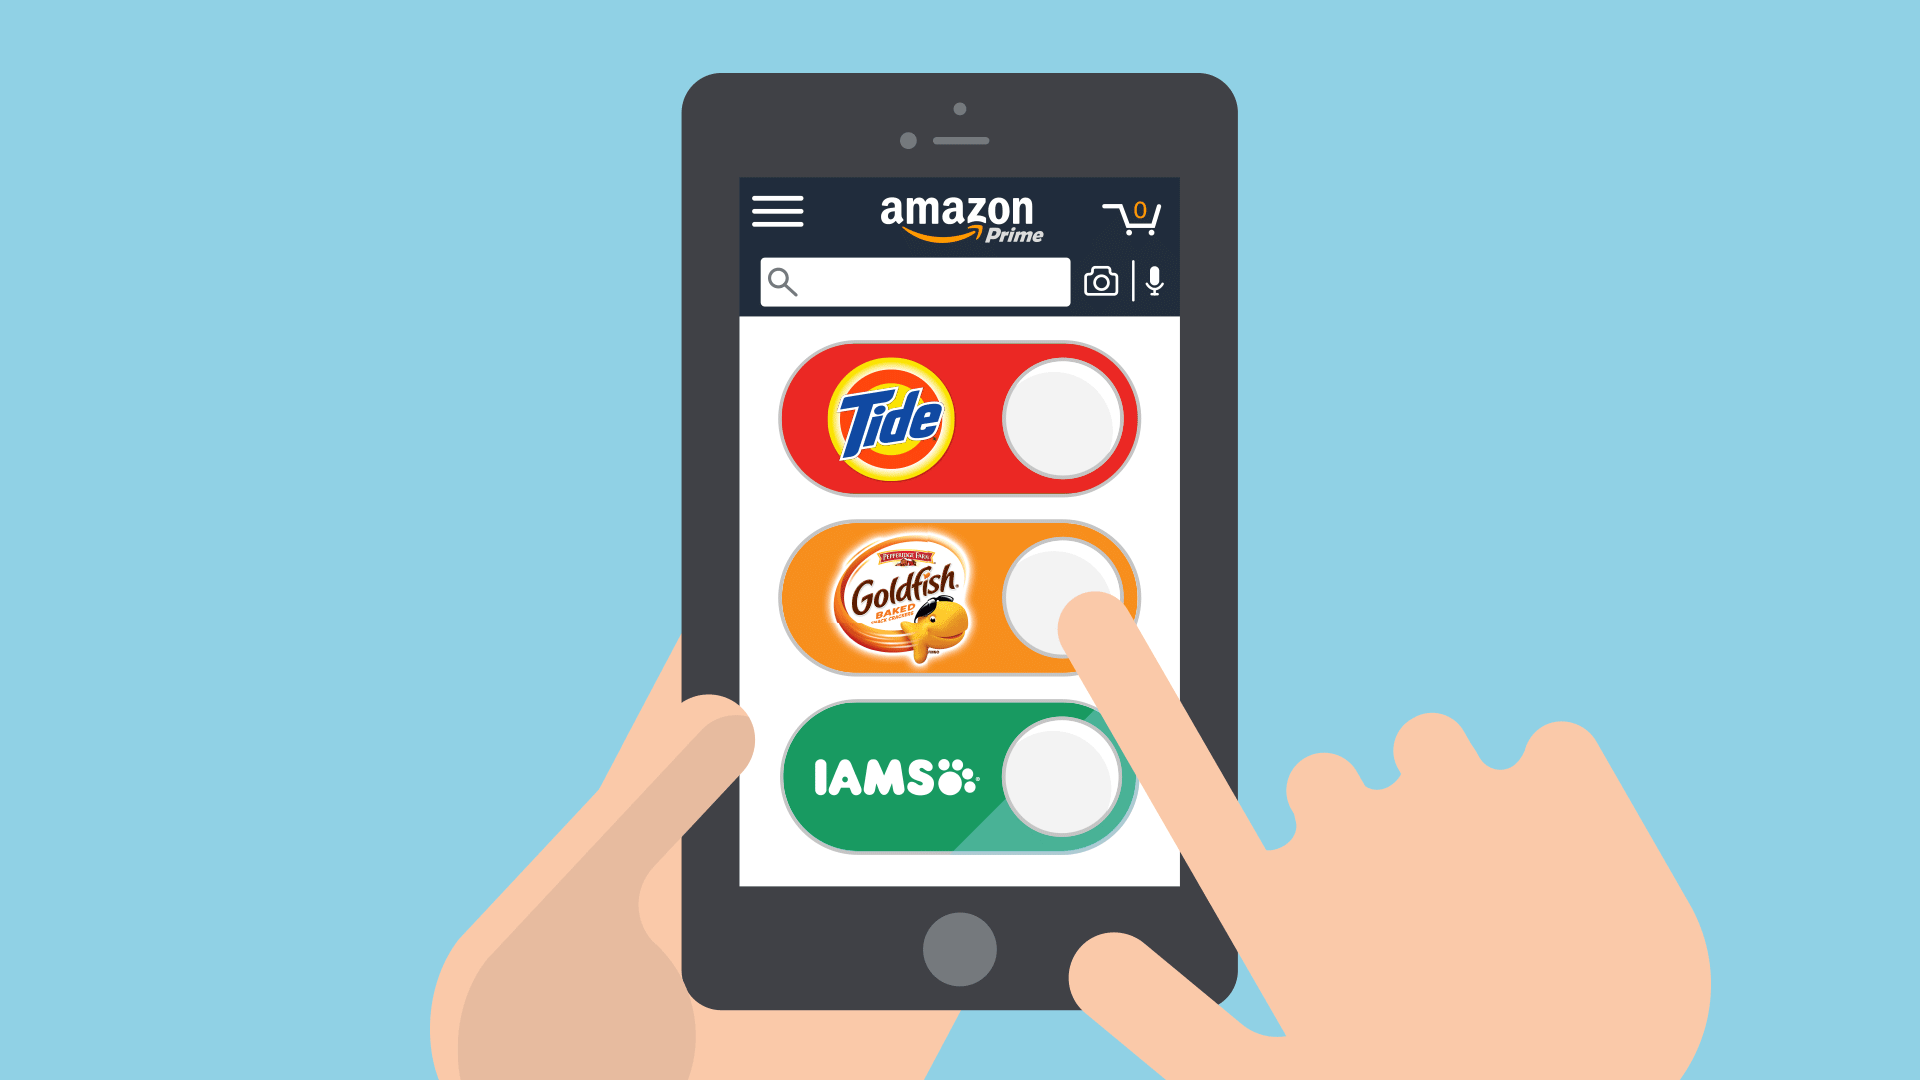 Amazon permitirá integrar dash buttons virtuales en los dispositivos inteligentes de terceros fabricantes